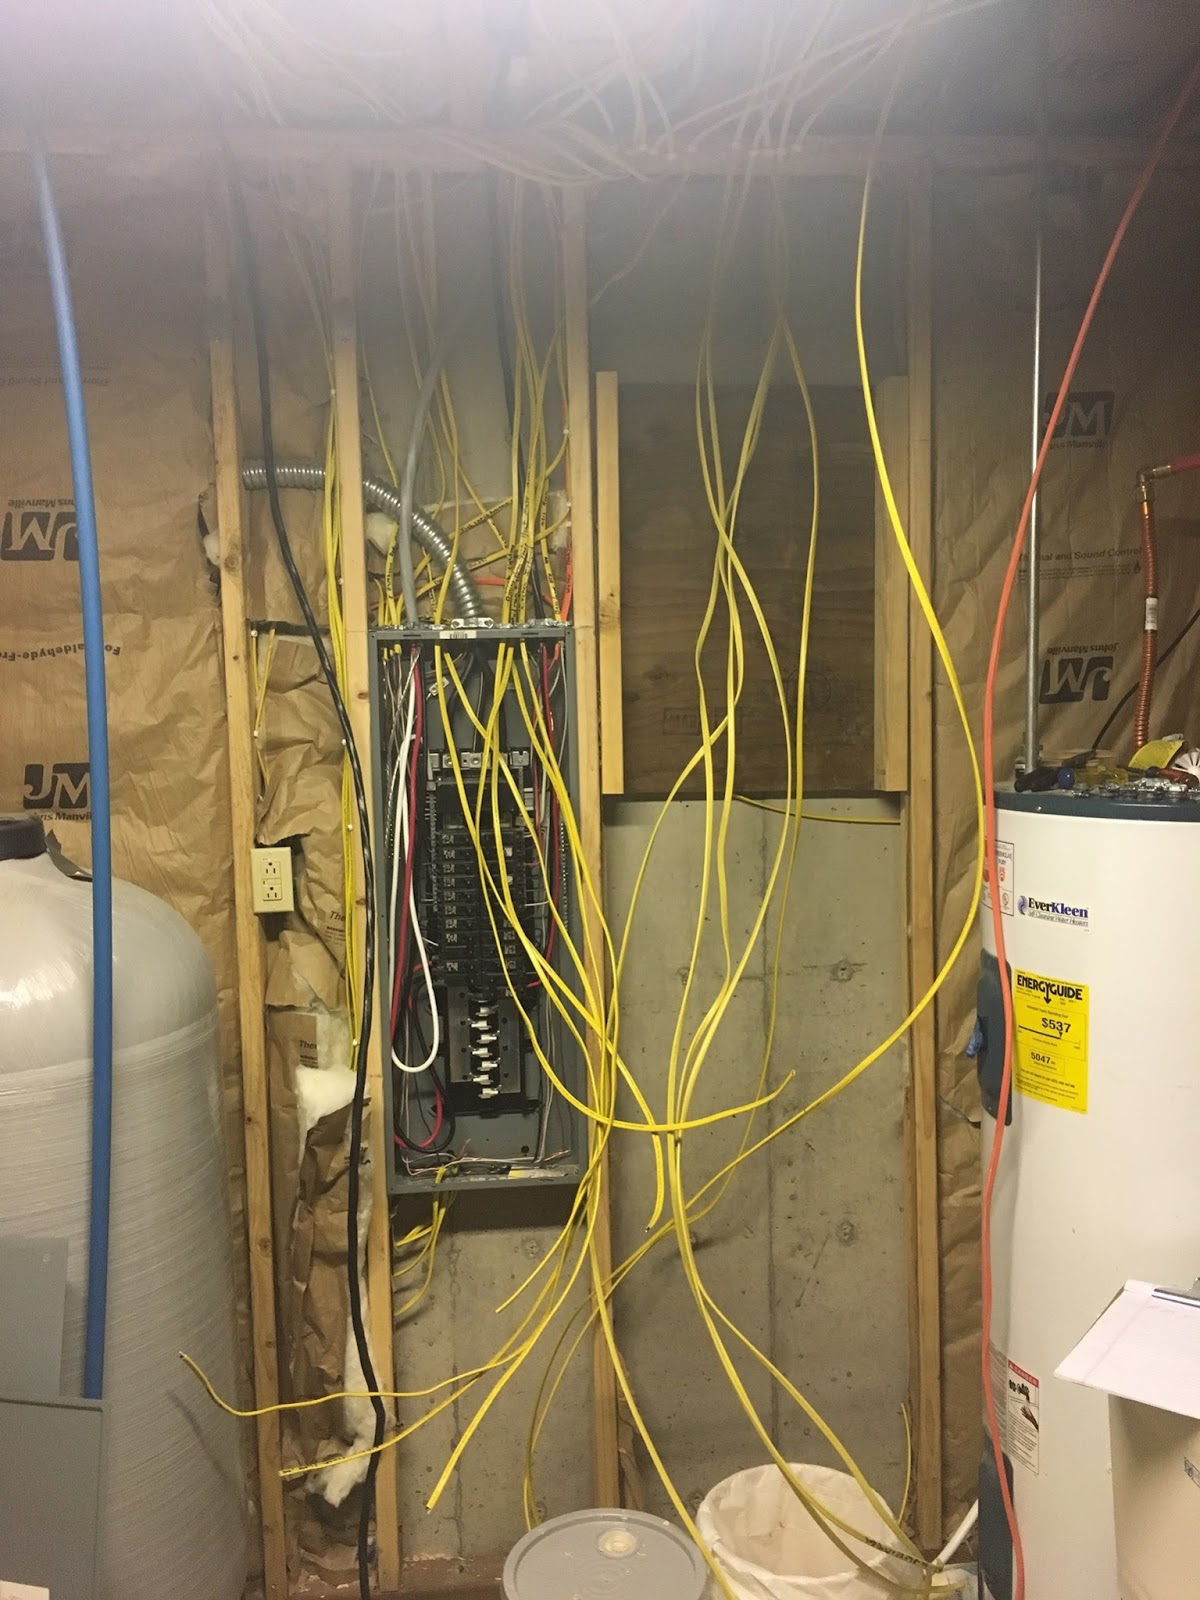 Anderson Log Cabin Fever Home Building 2017 Wiring Main Panel Pre Basement I Ran The Majority Of Electrical To Connected Three Floor Circuits Loft Sub